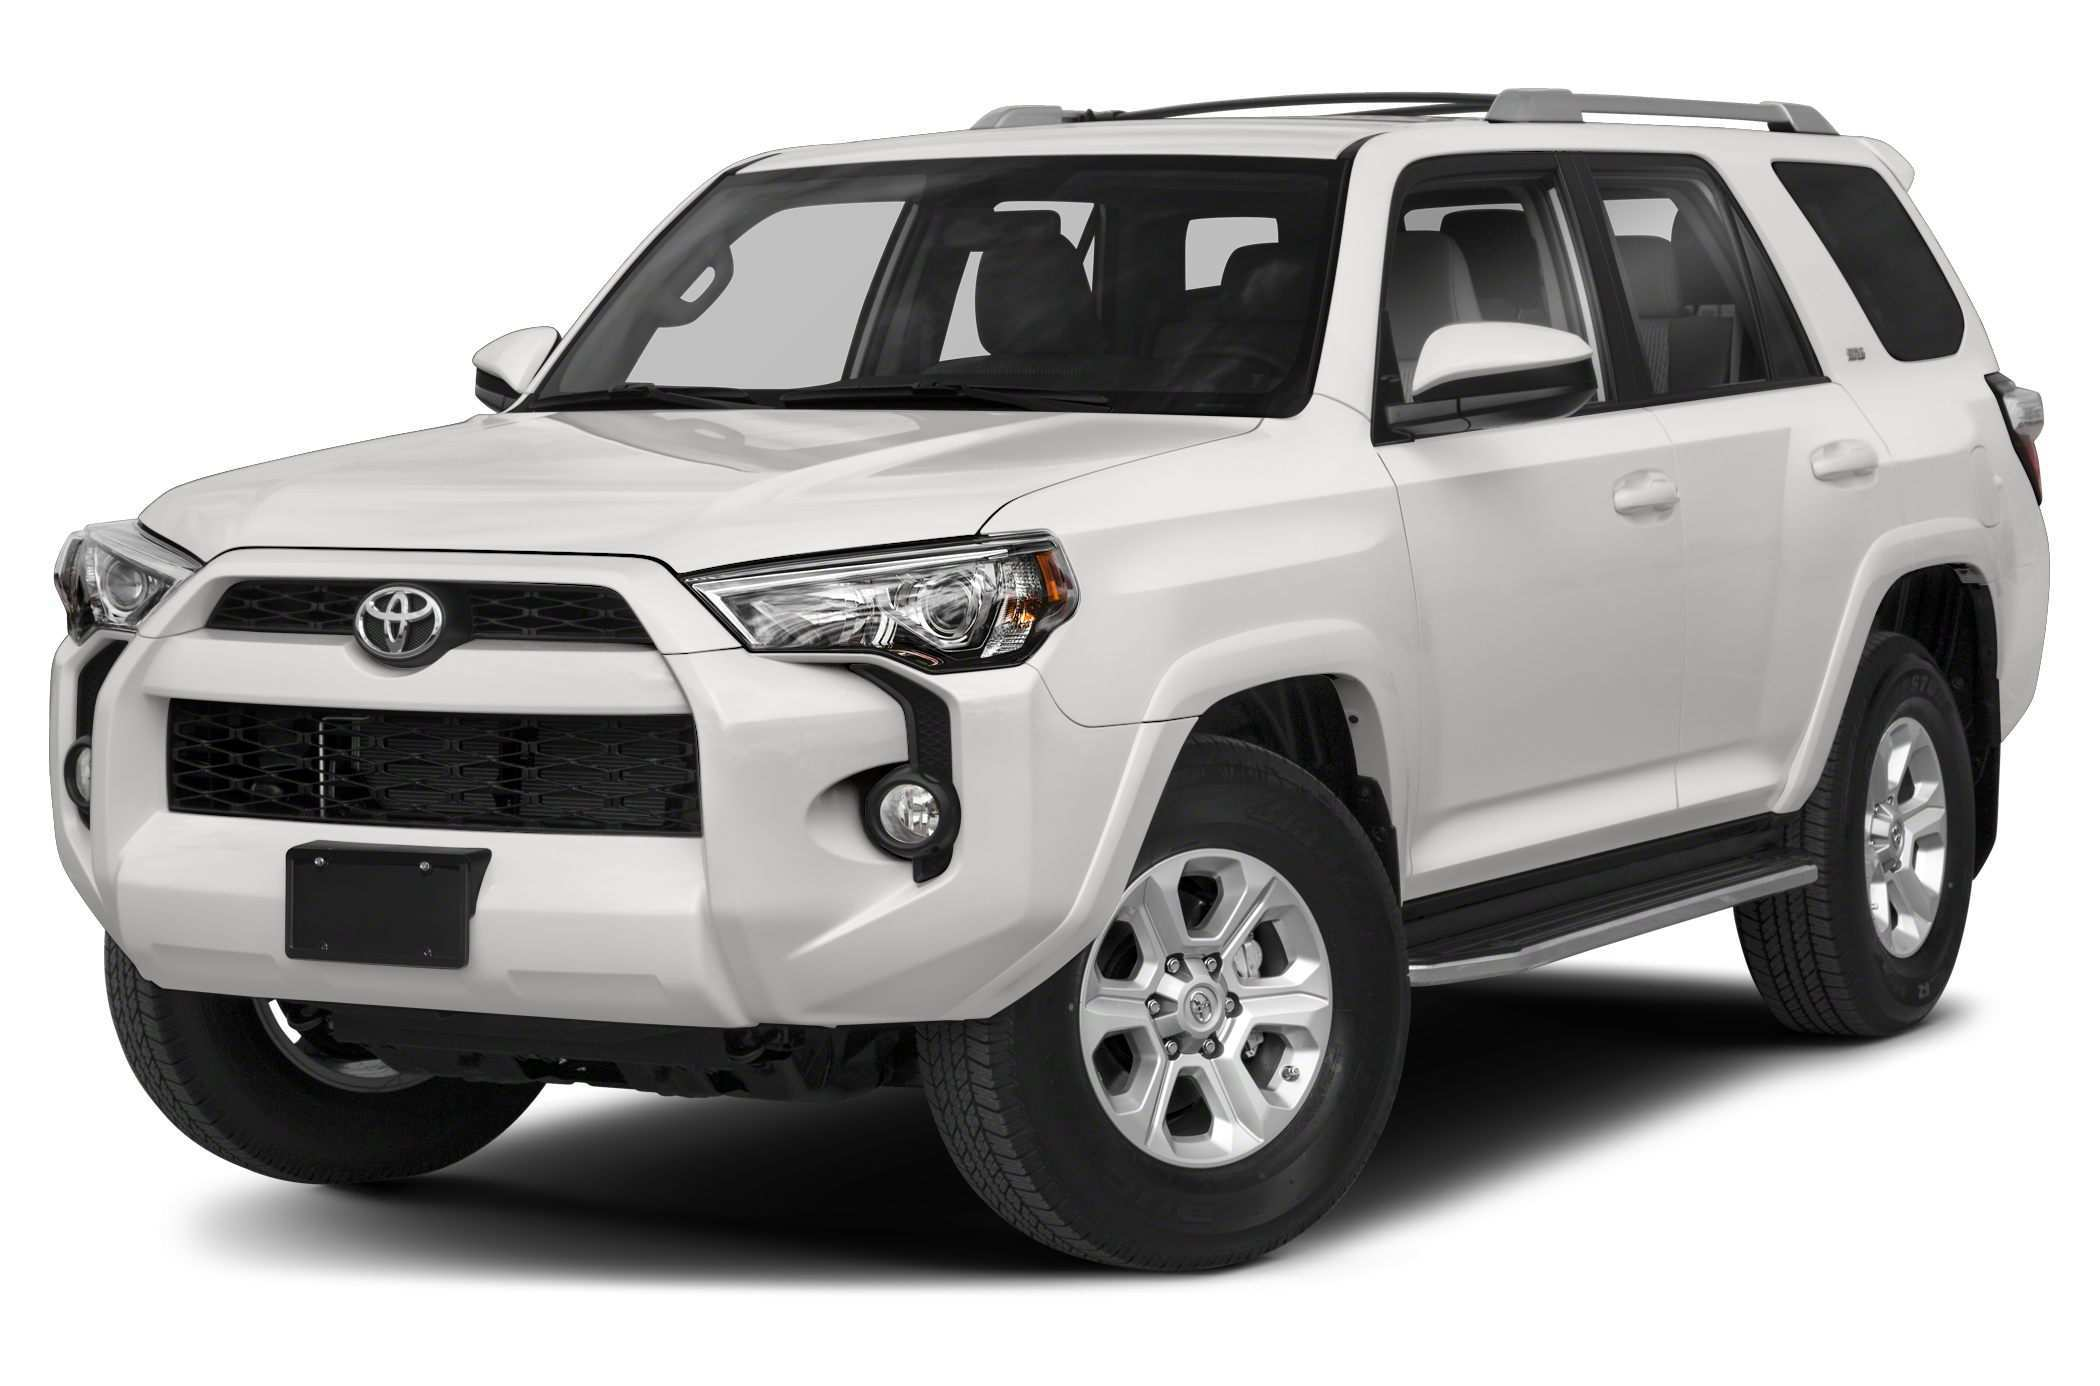 65 Best Review 2019 Toyota 4Runner Exterior with 2019 Toyota 4Runner